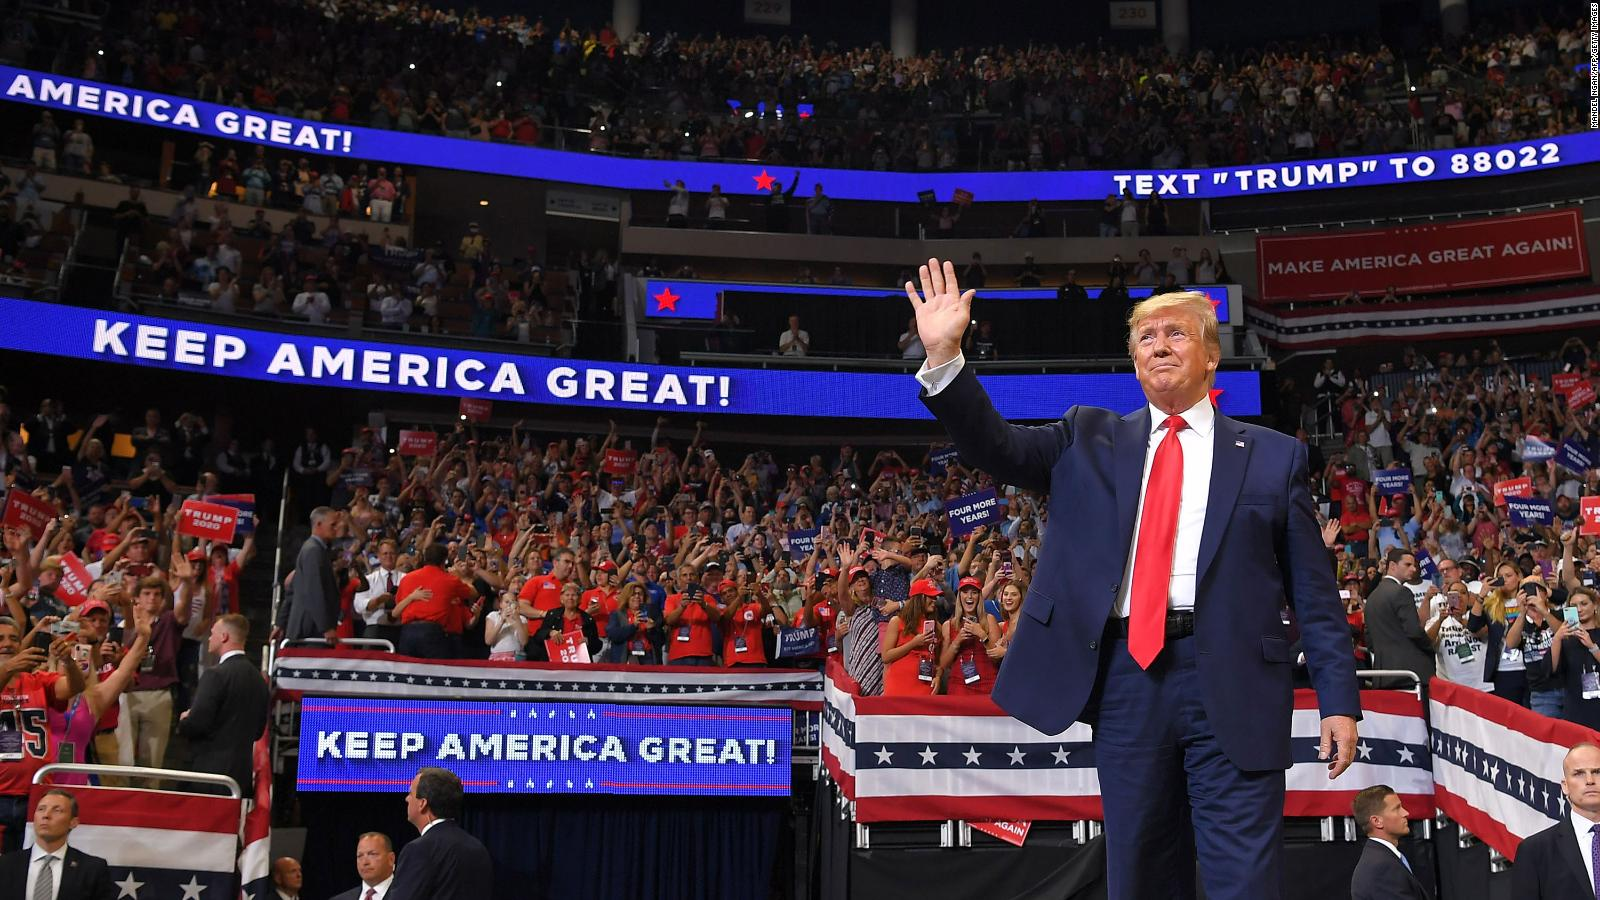 Blatant election interferance. States making it illegal to support Trump. Henderson fines Xtreme Manufacturing $3,000 for hosting 5,600-person Trump rally in violation of state emergency directives (thenevadaindependent.com)